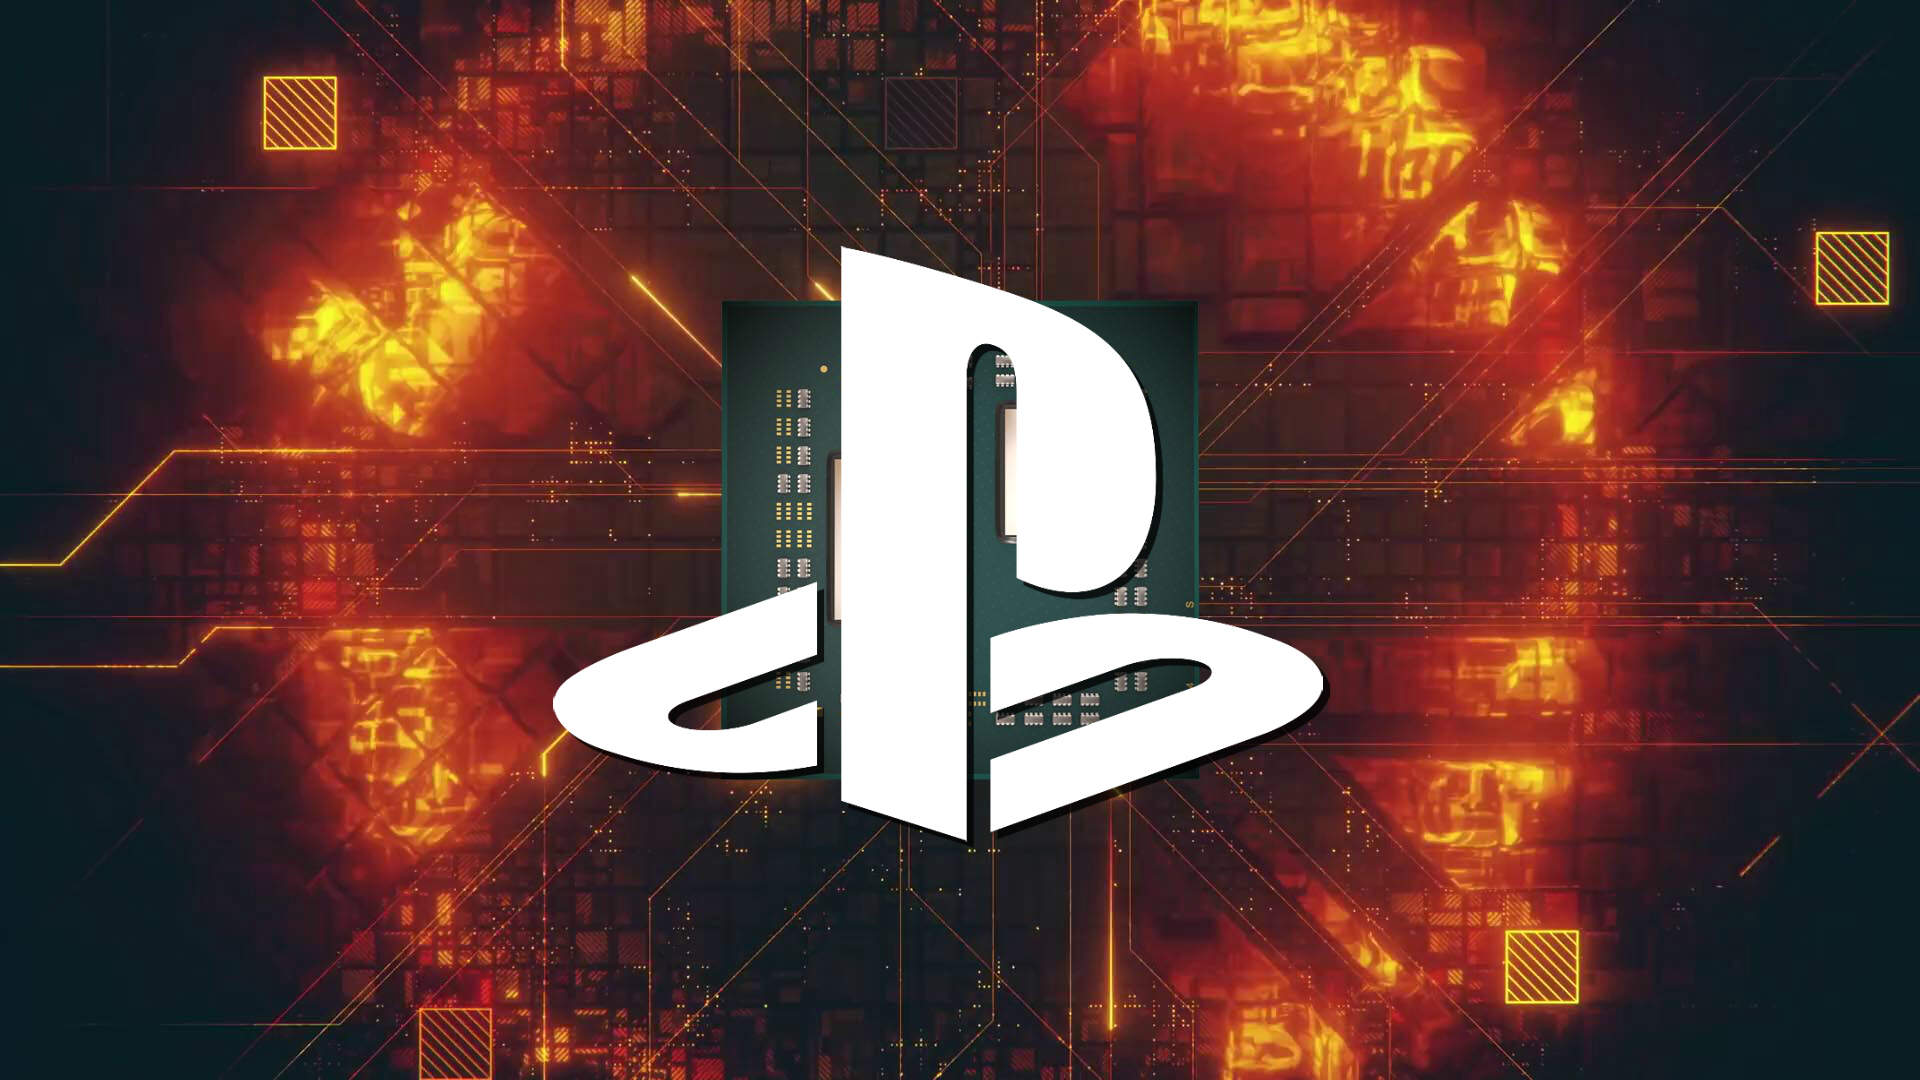 PlayStation is Skipping E3 Again [Update: ESA Responds]